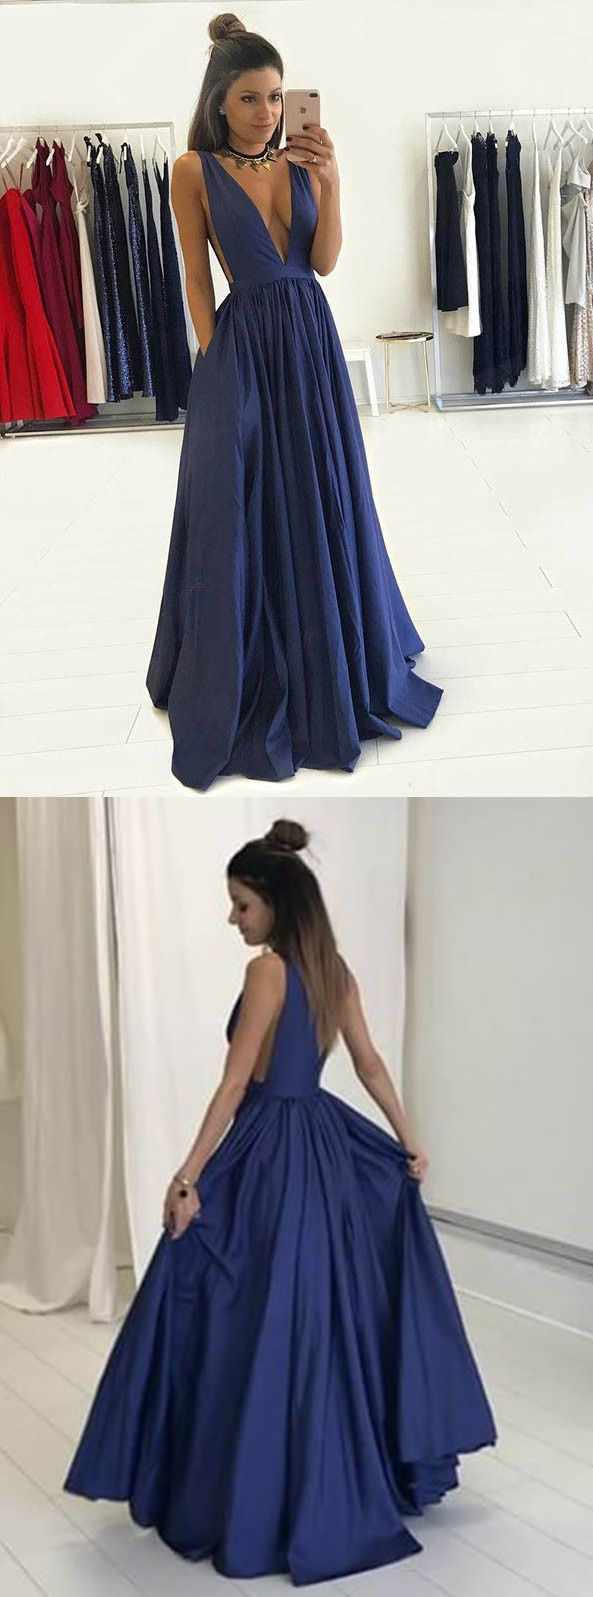 11 best Debs images on Pinterest | Night out dresses, Ball gown and ...